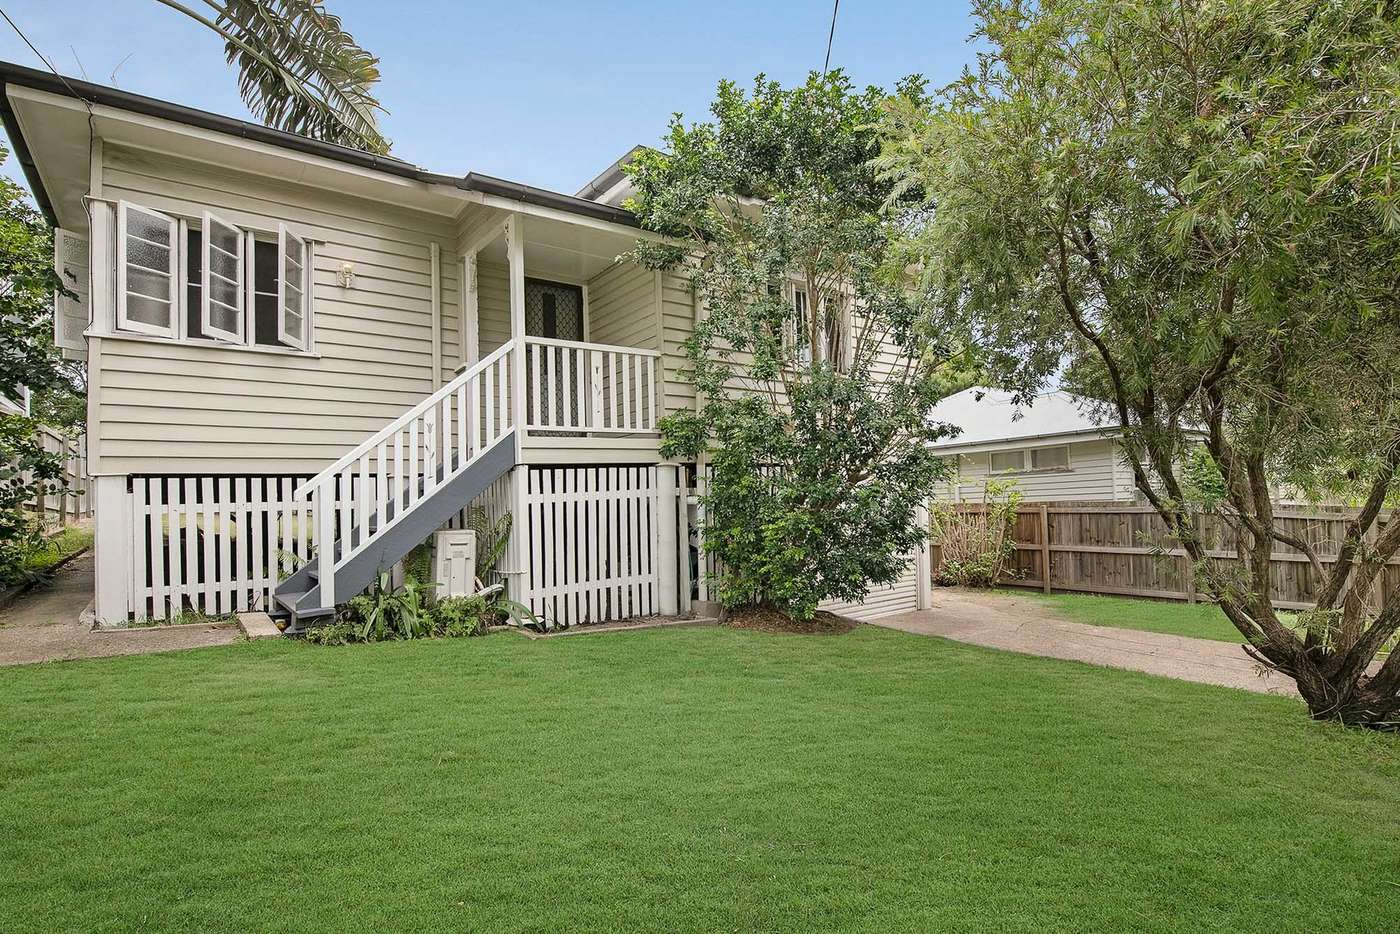 Main view of Homely house listing, 54 Moolabar Street, Morningside QLD 4170